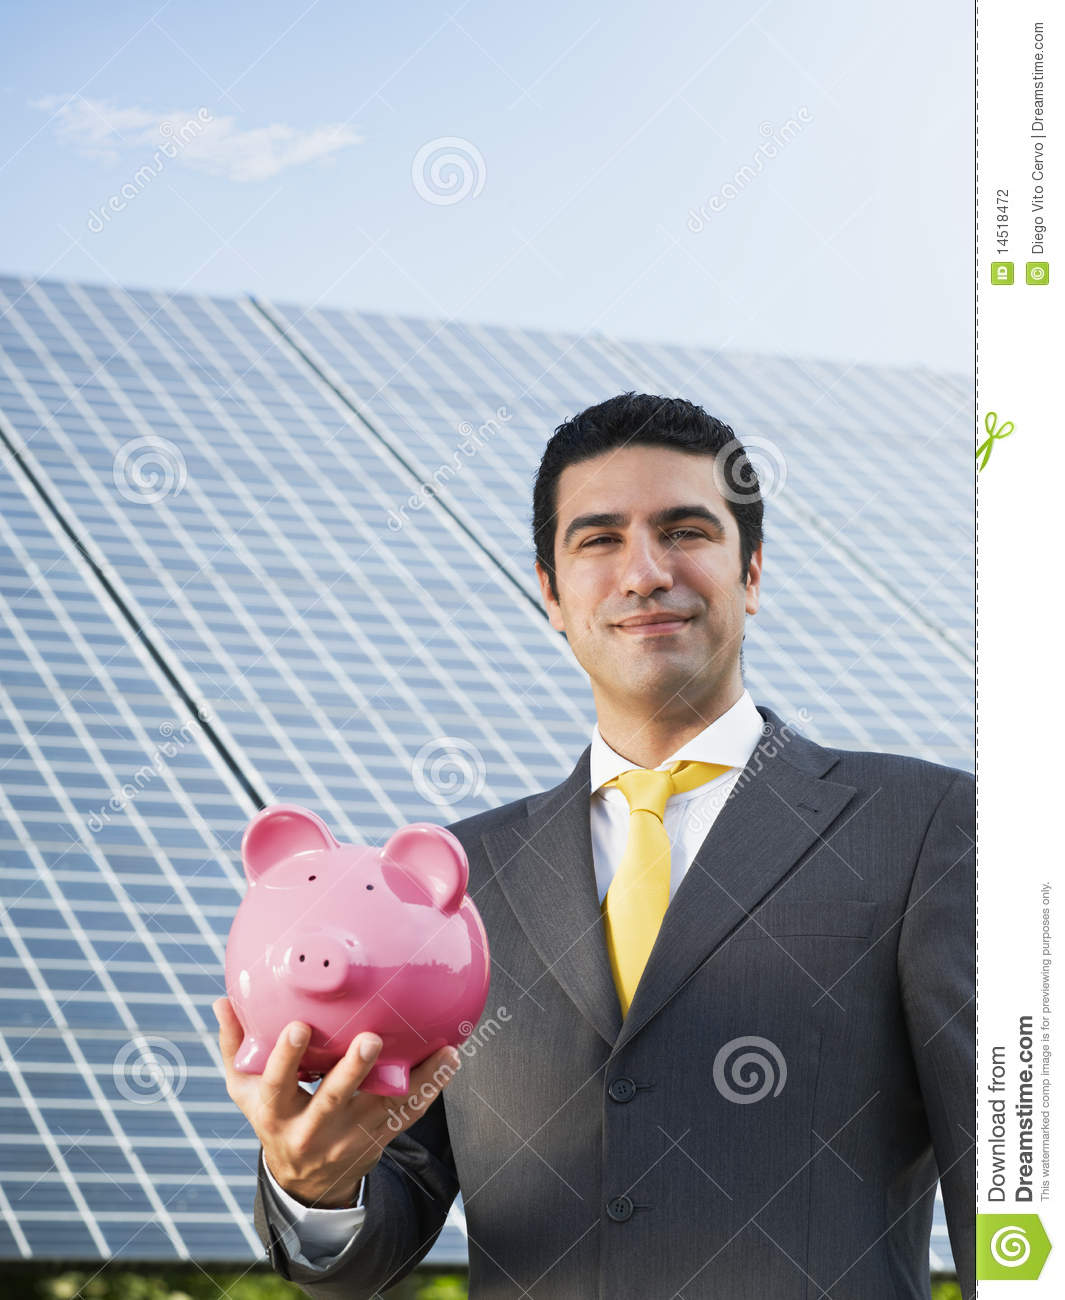 Download Businessman And Solar Panels Stock Photo - Image of adult, businessperson: 14518472